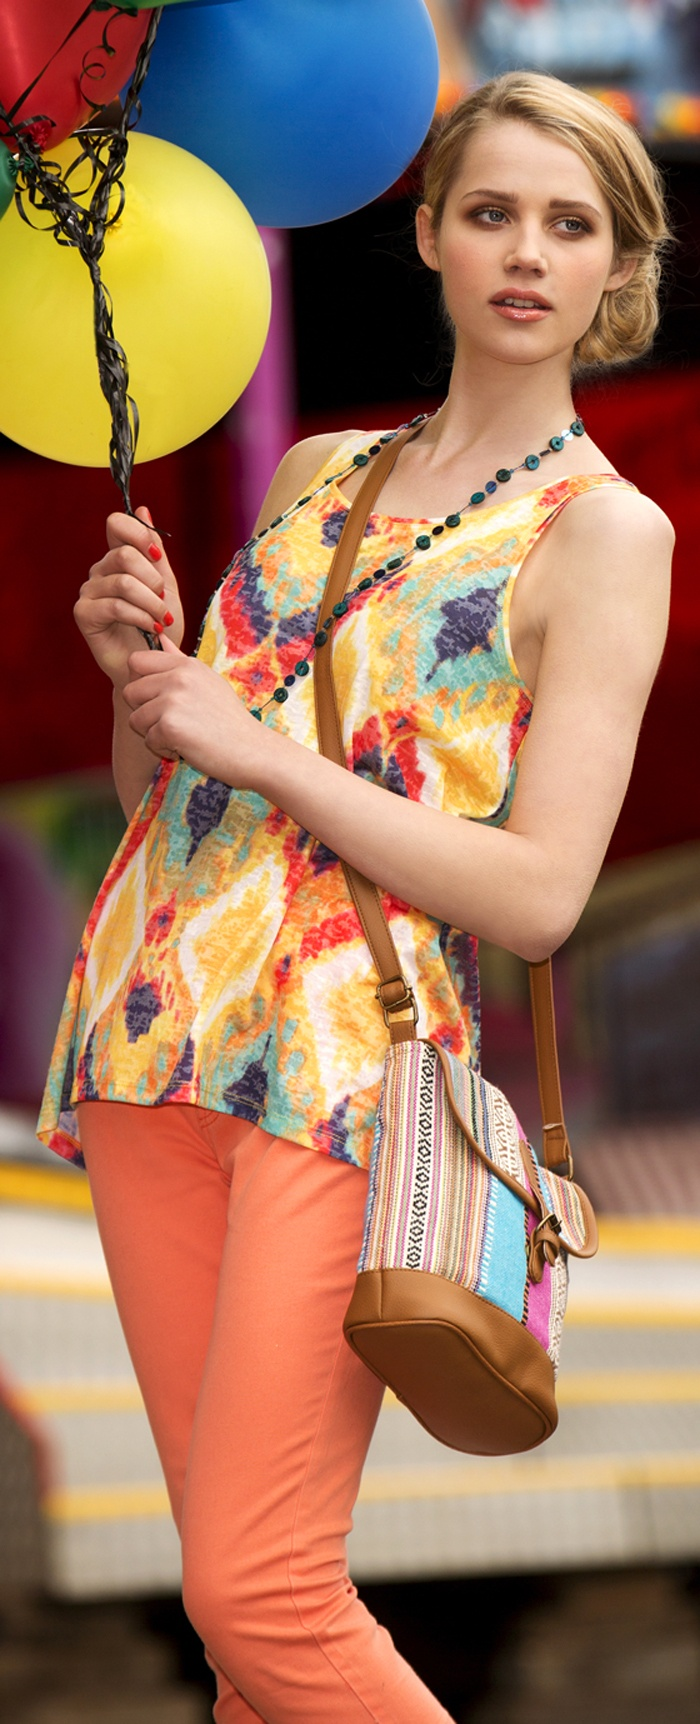 tribal and brights - dunnes - TRENDS FOR SPRING & SUMMER - http://boomerinas.com/2013/02/different-types-of-tribal-print-pattern-trends/